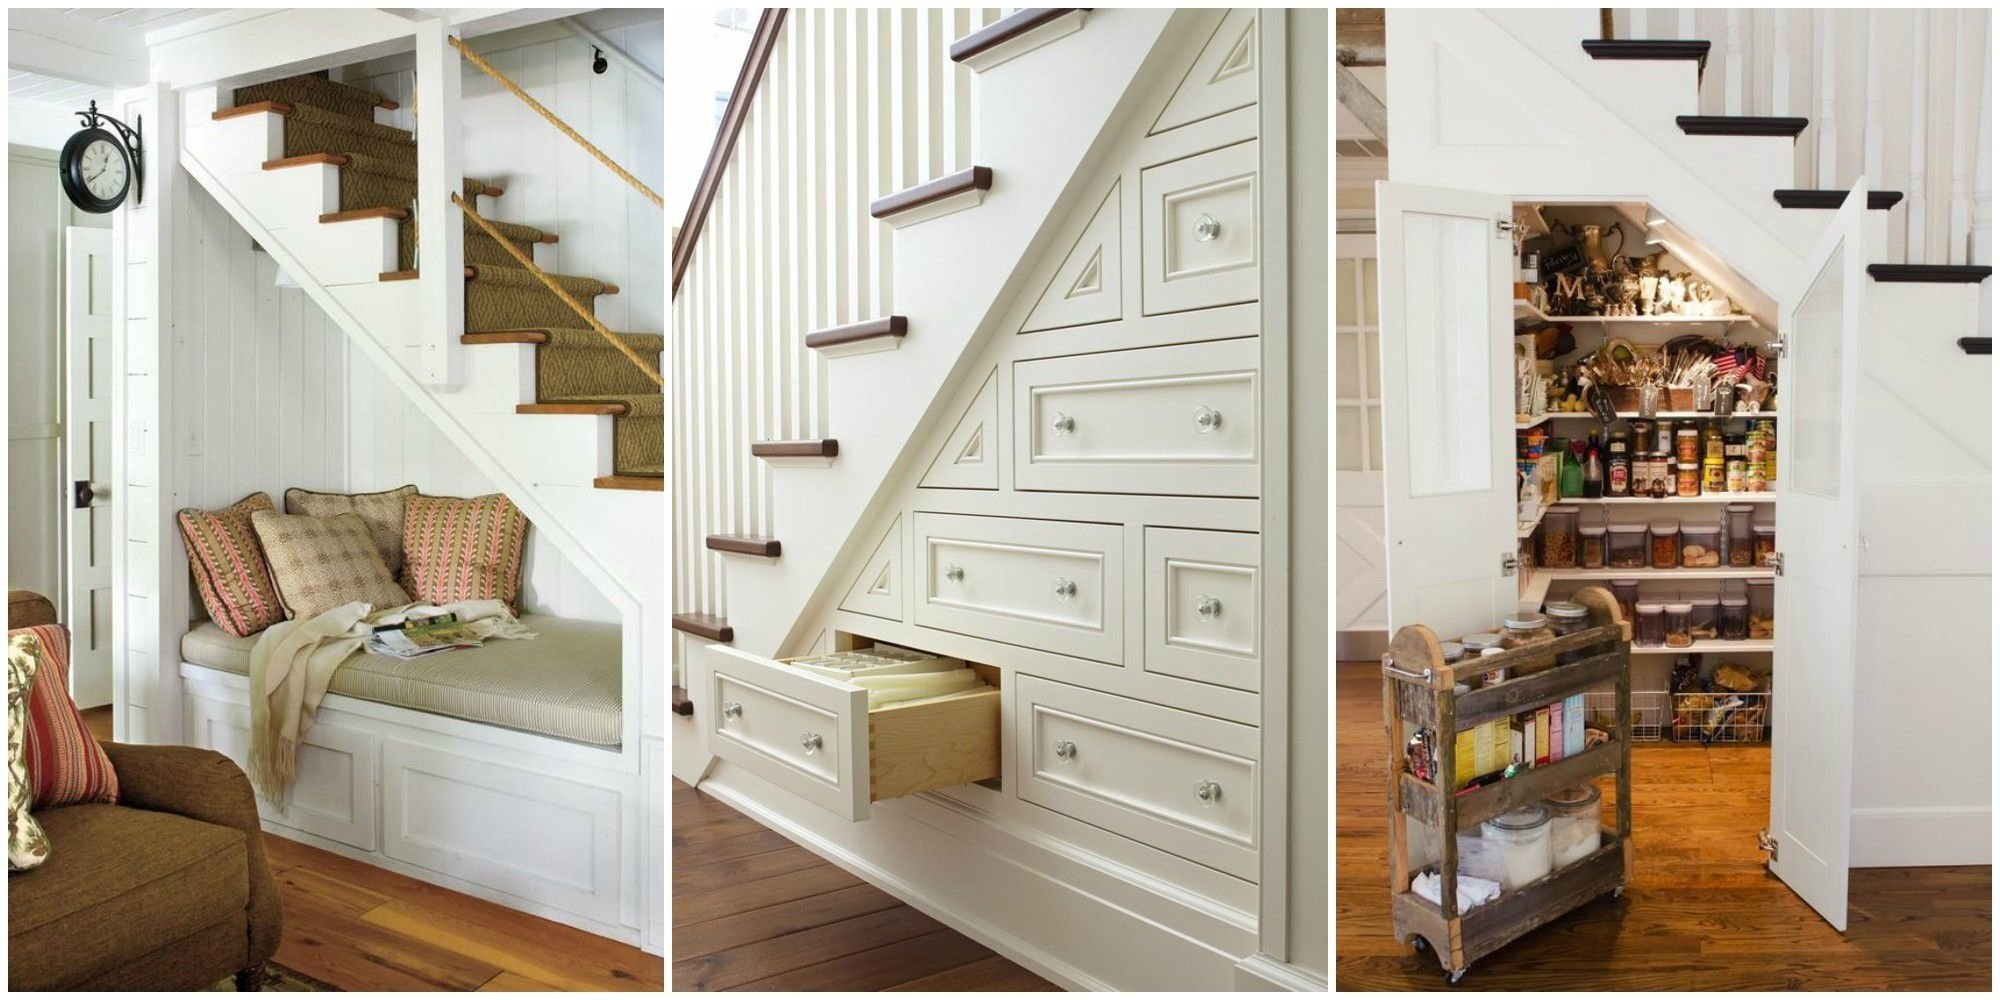 10 Most Popular Under The Stairs Storage Ideas 15 genius under stairs storage ideas what to do with empty space 2020